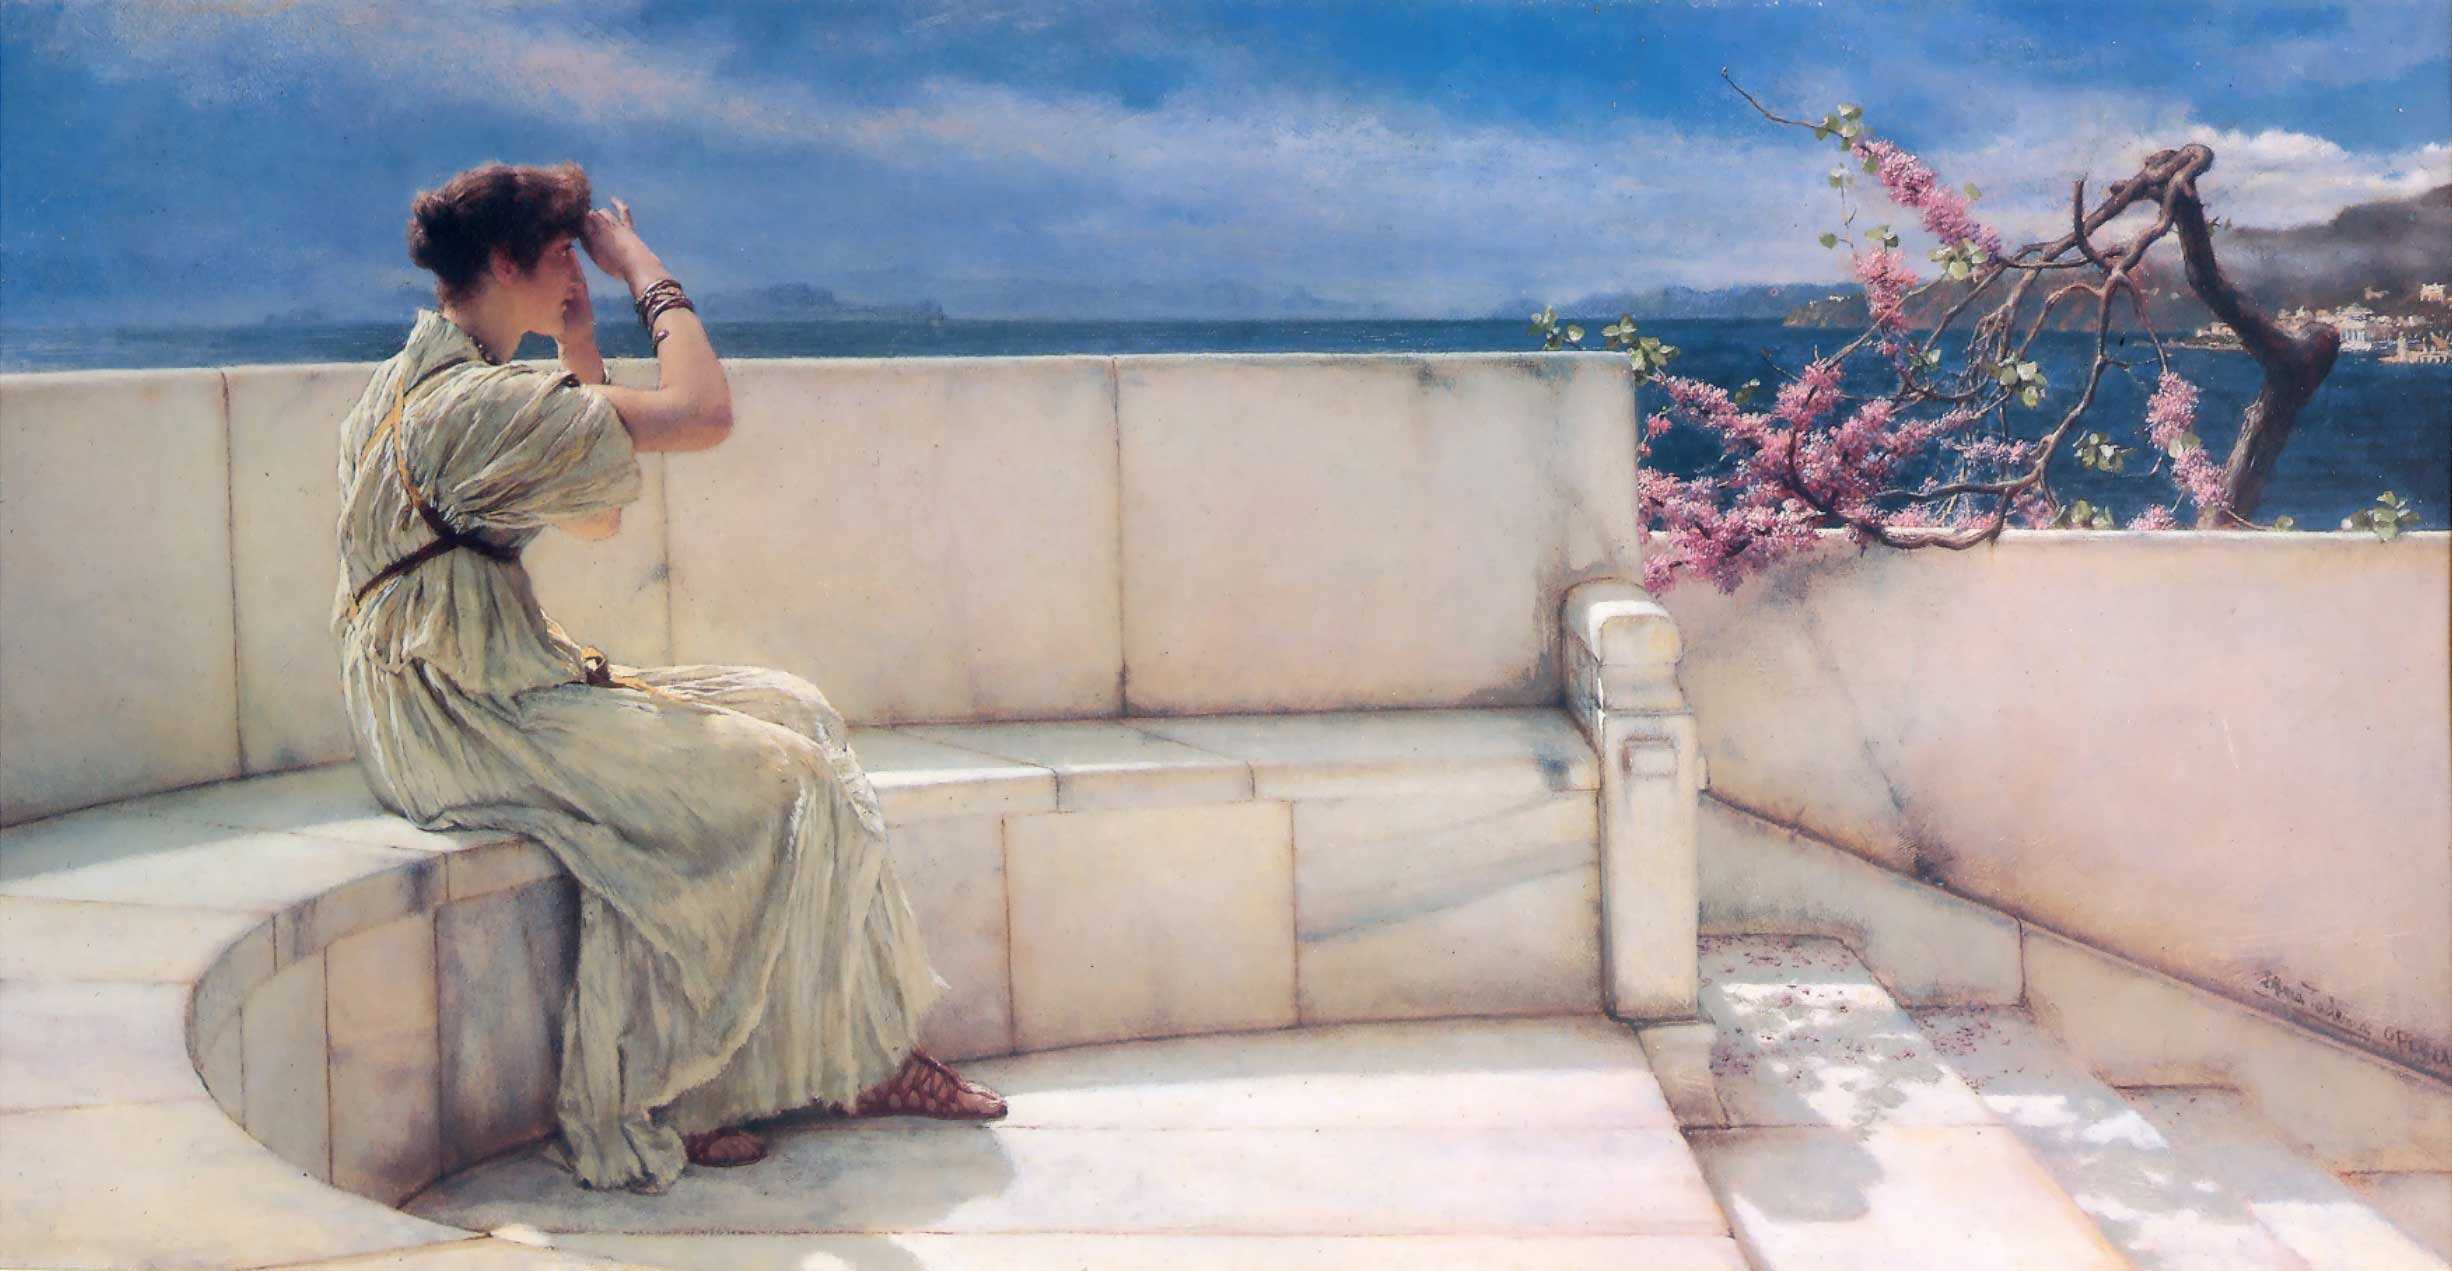 http://uploads3.wikipaintings.org/images/alma-tadema-lawrence/expectations.jpg